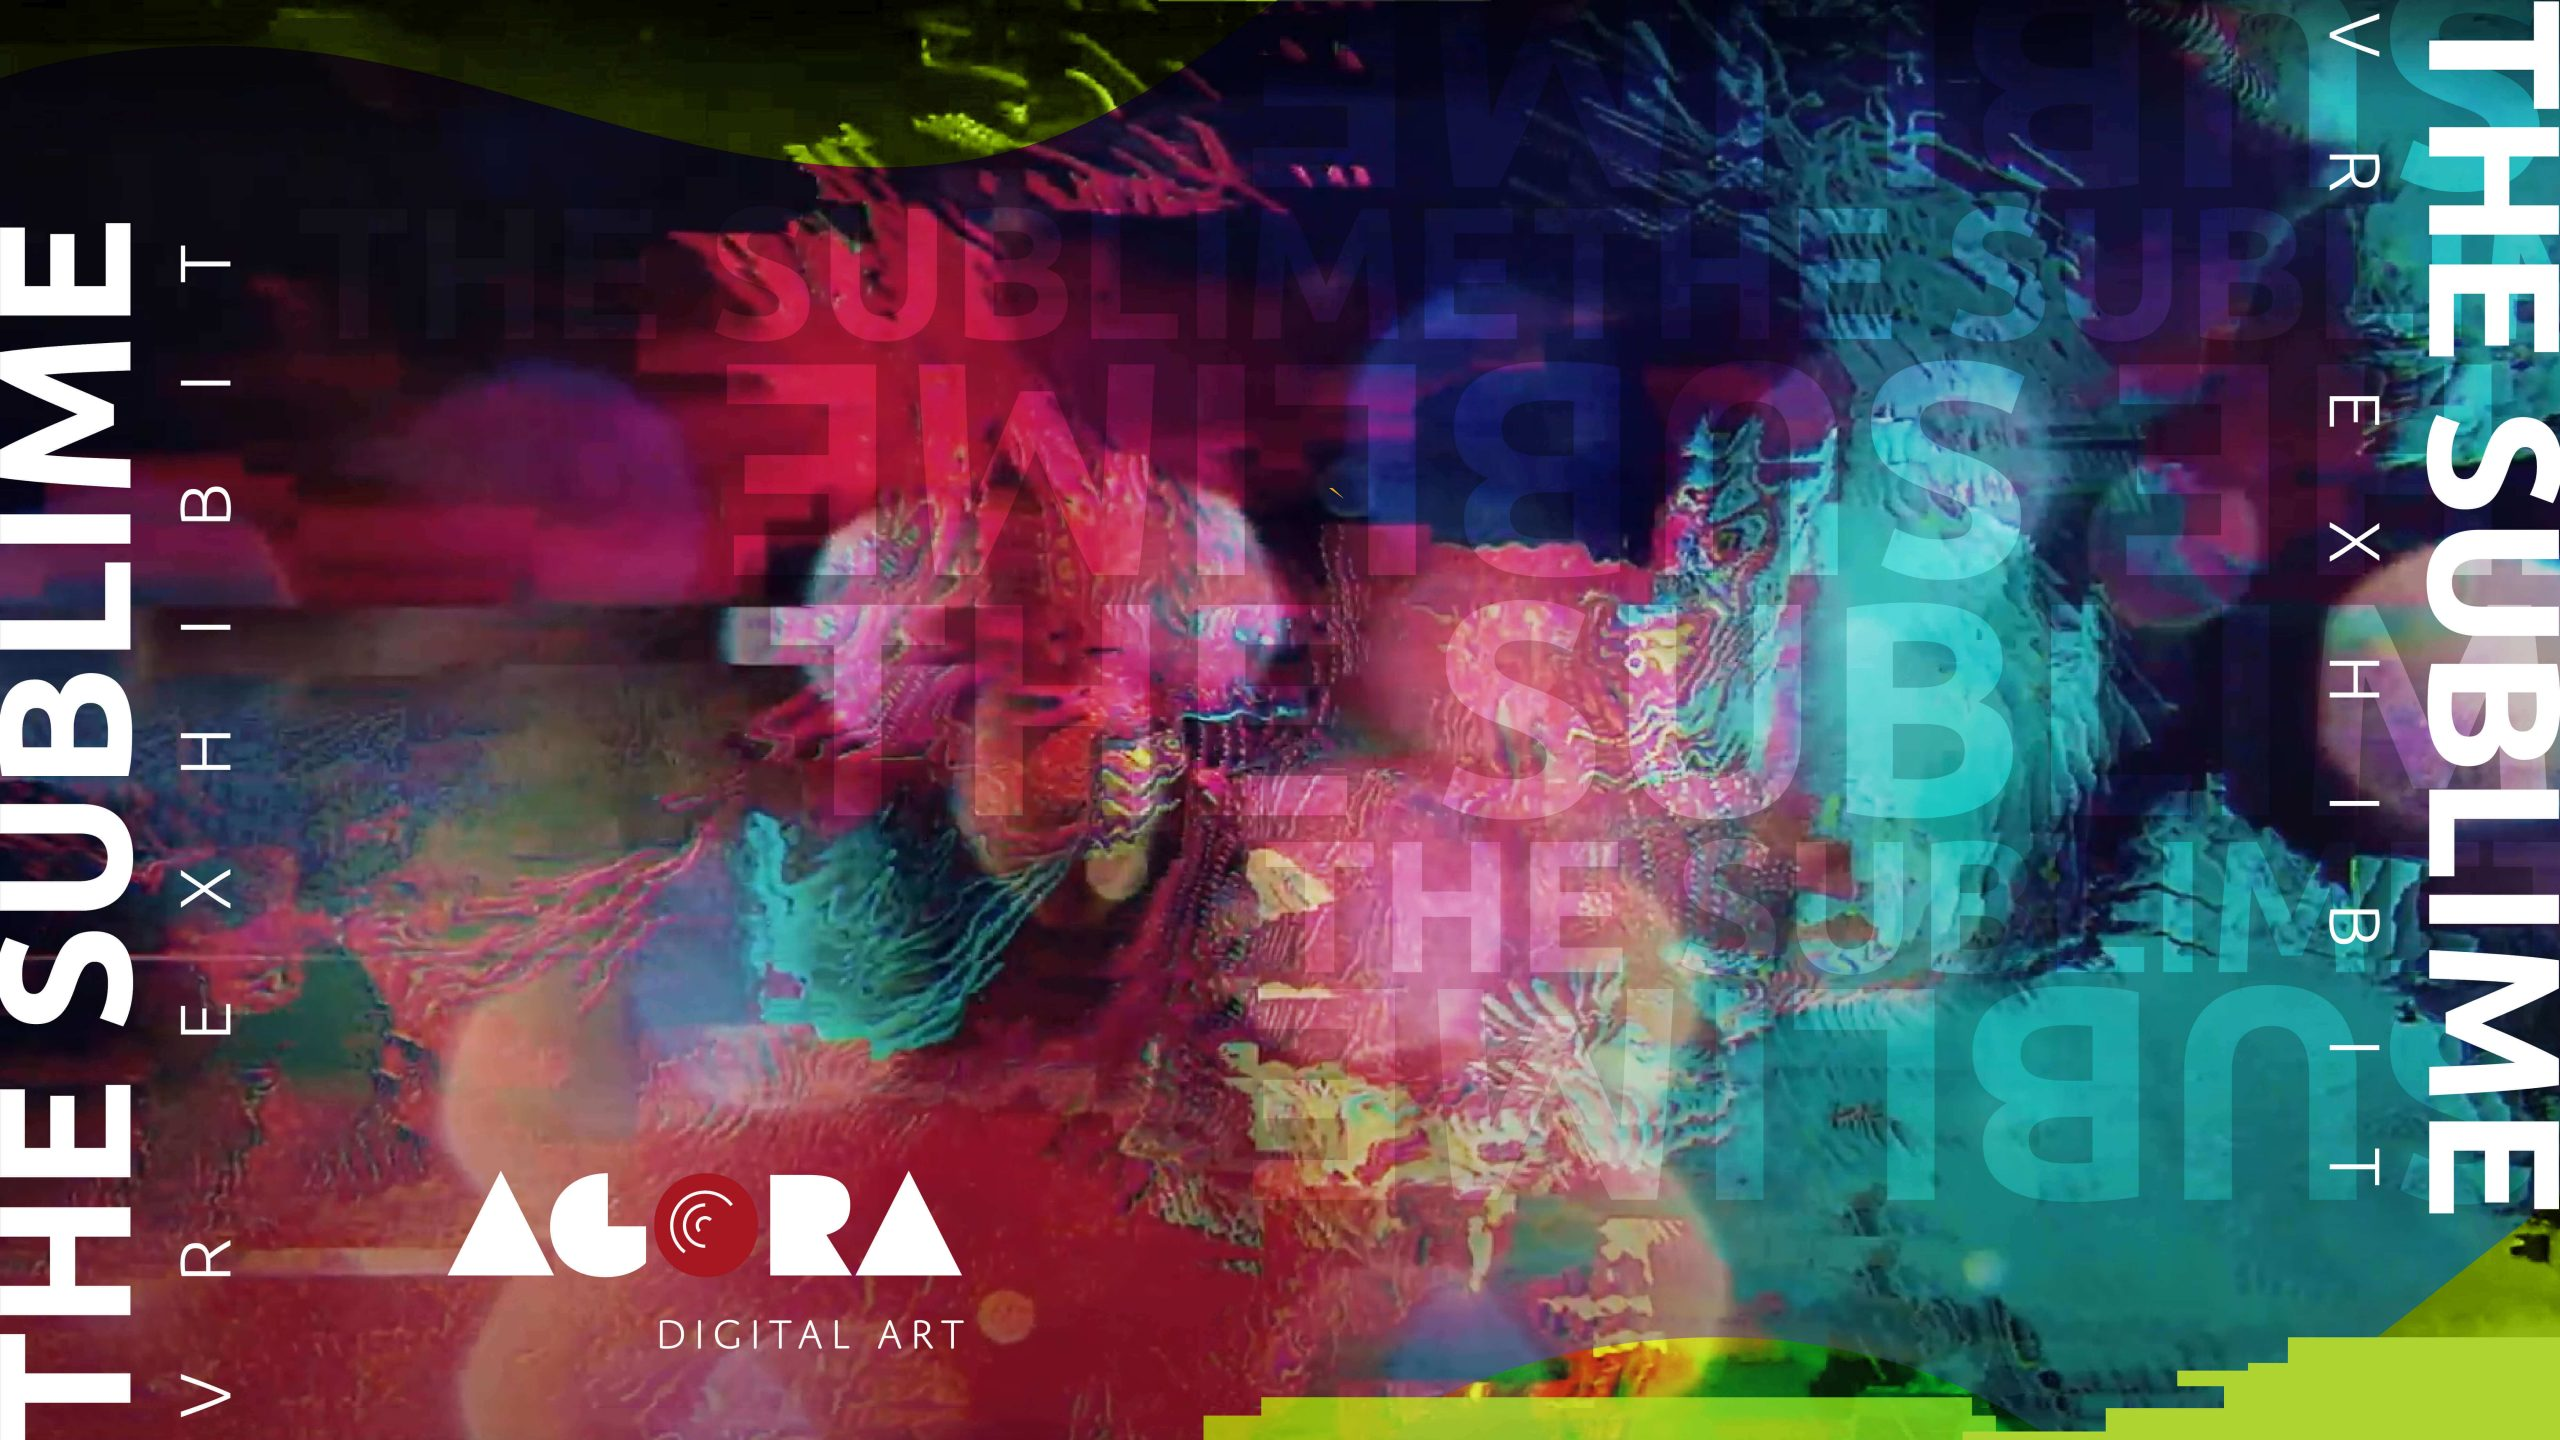 The Sublime   VR Exhibit by Agora Digital Art